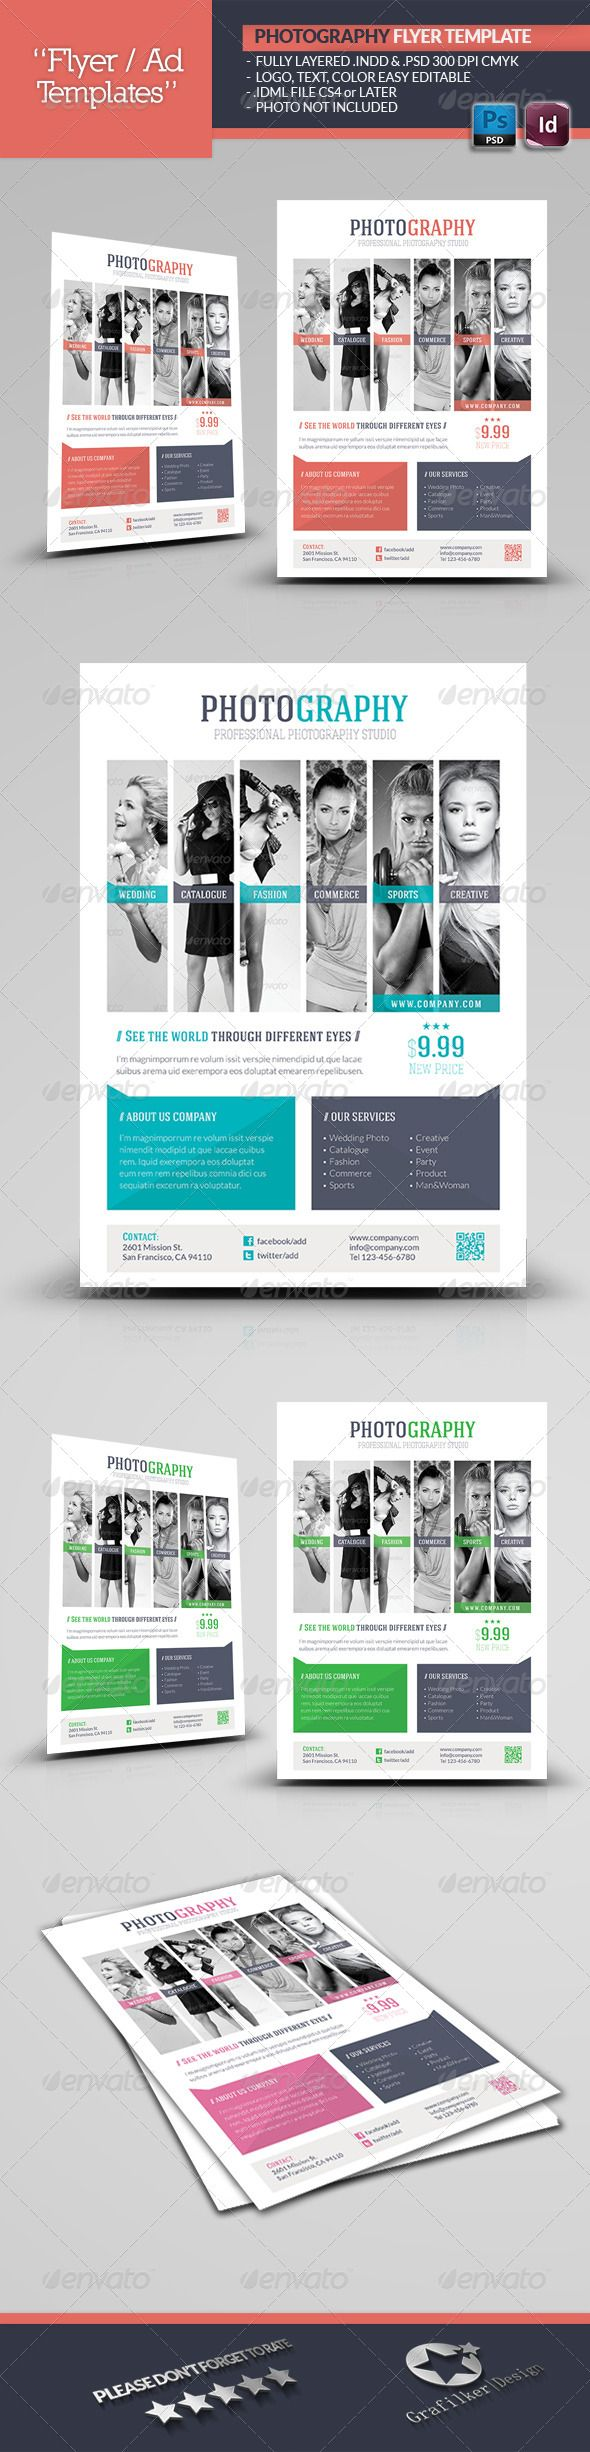 Photography Flyer Template Corporate Flyers Design Pinterest